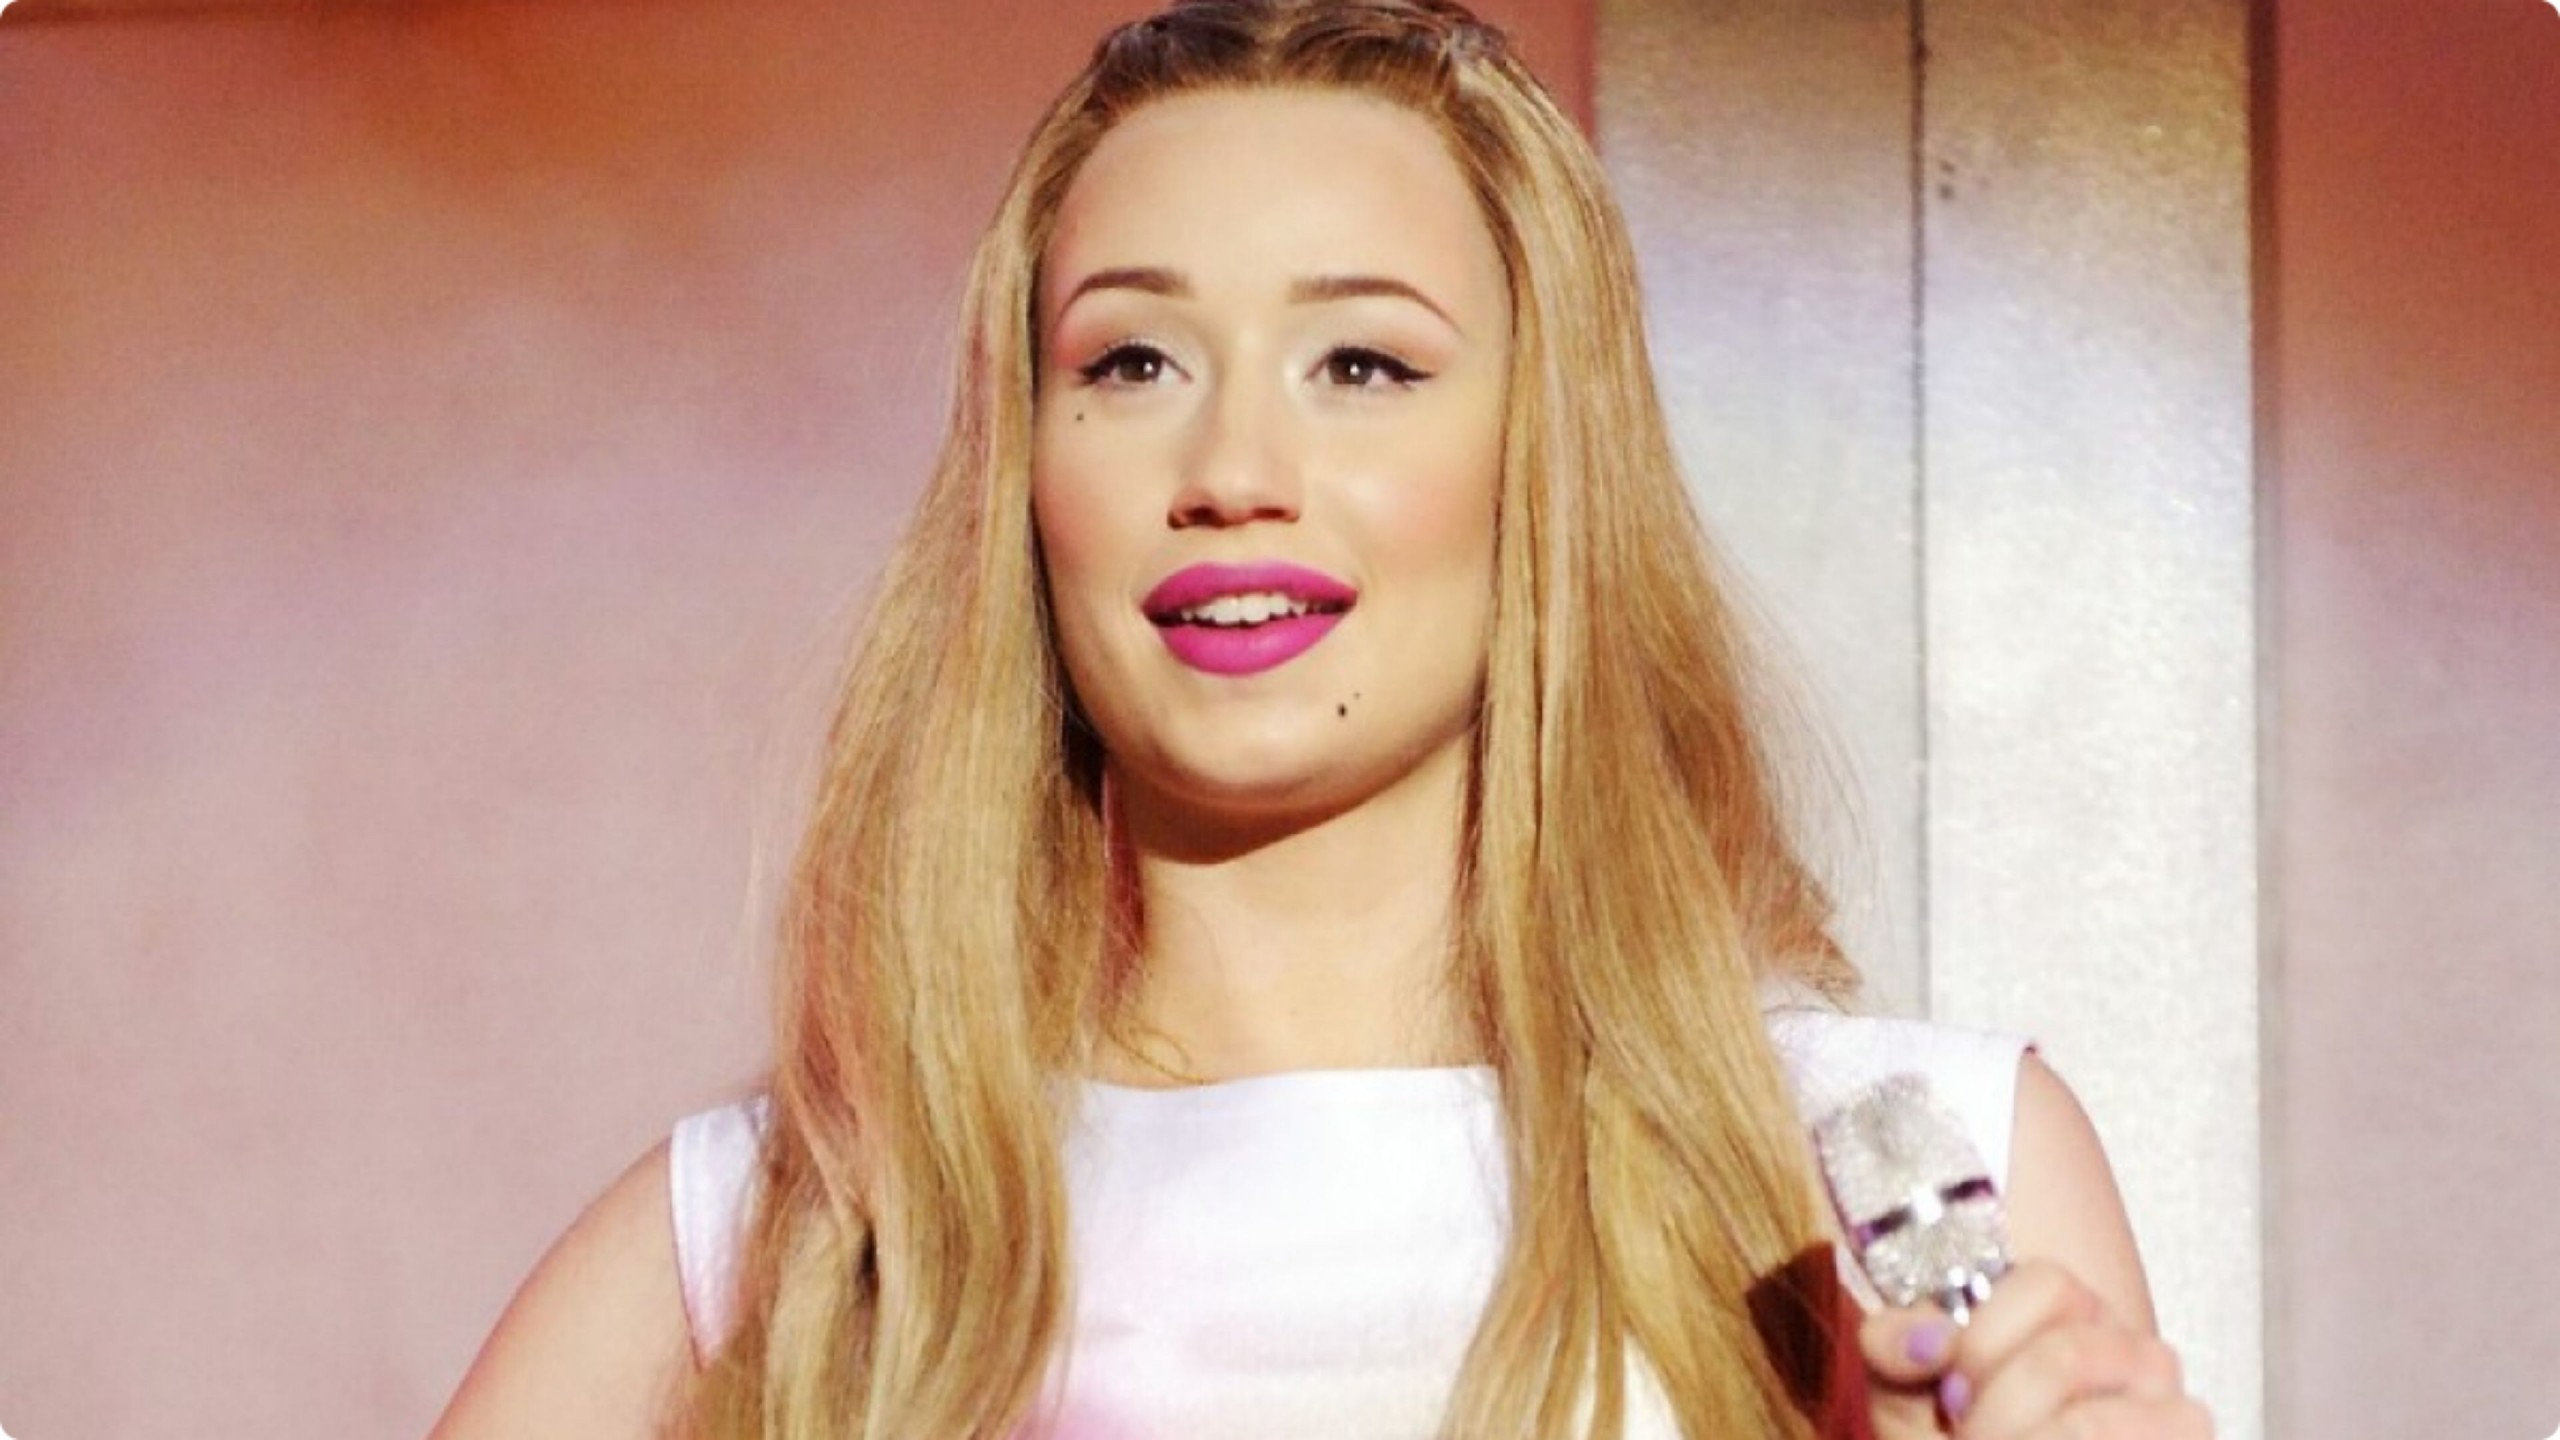 Iggy Azalea  Hollywood  Actress Wallpapers Download FREE  MrPopat  2560x1440